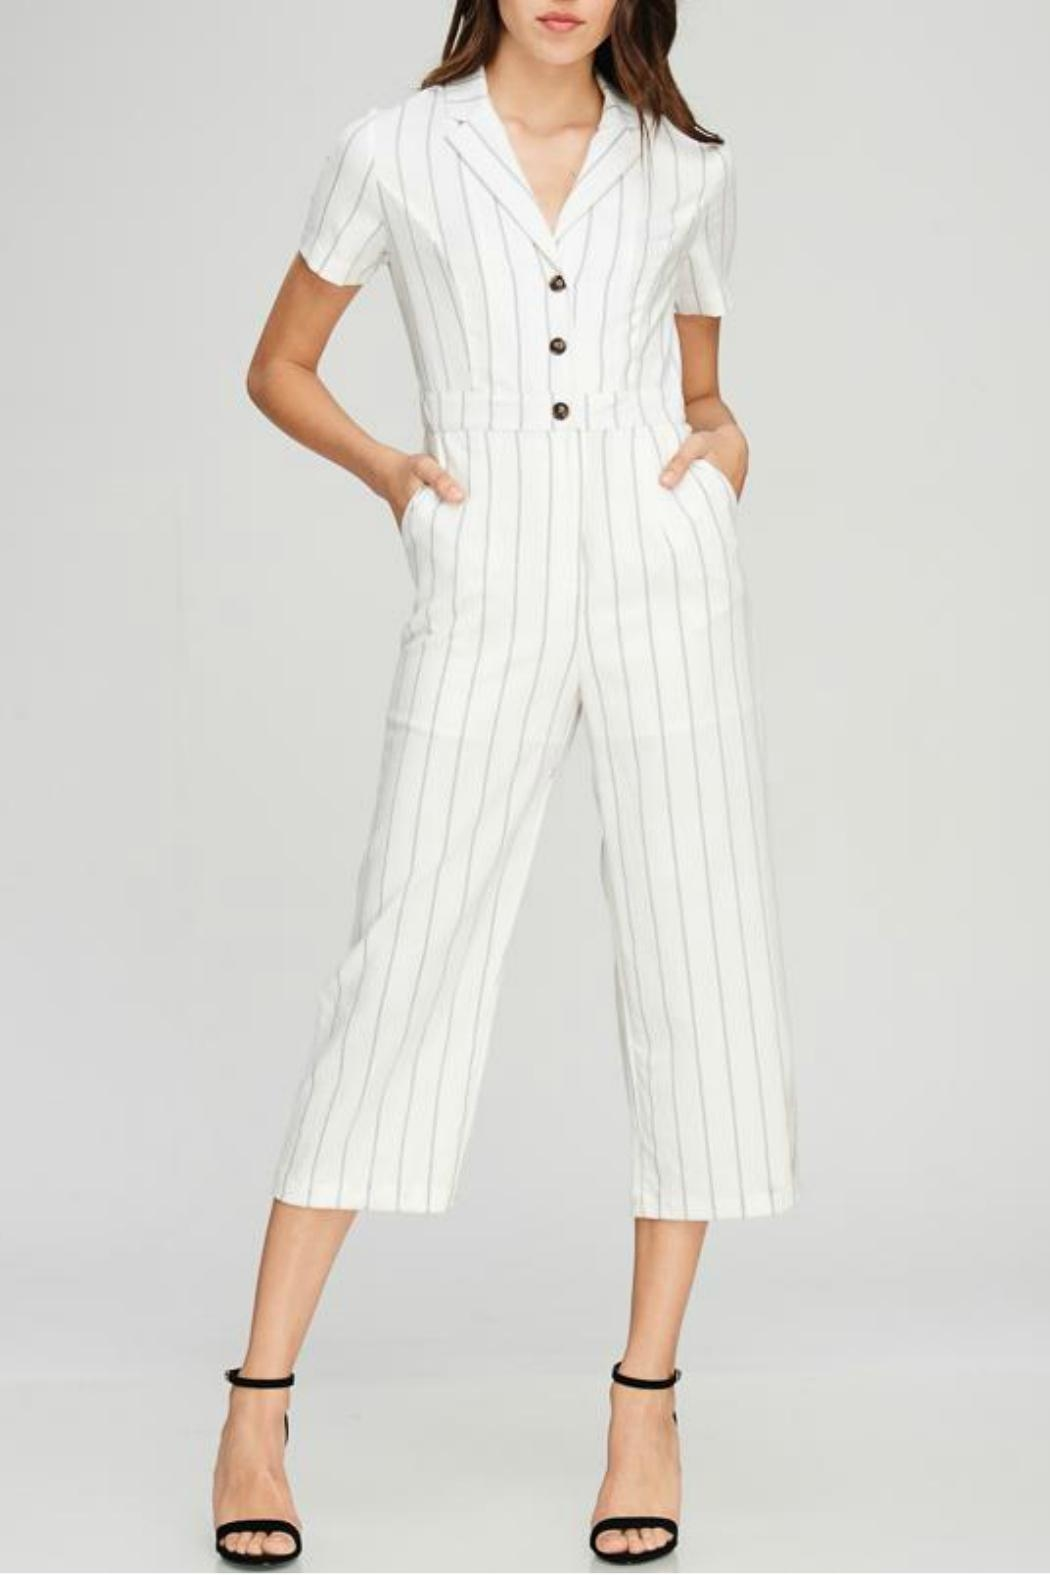 Emory Park Stripe Collared Jumpsuit - Main Image